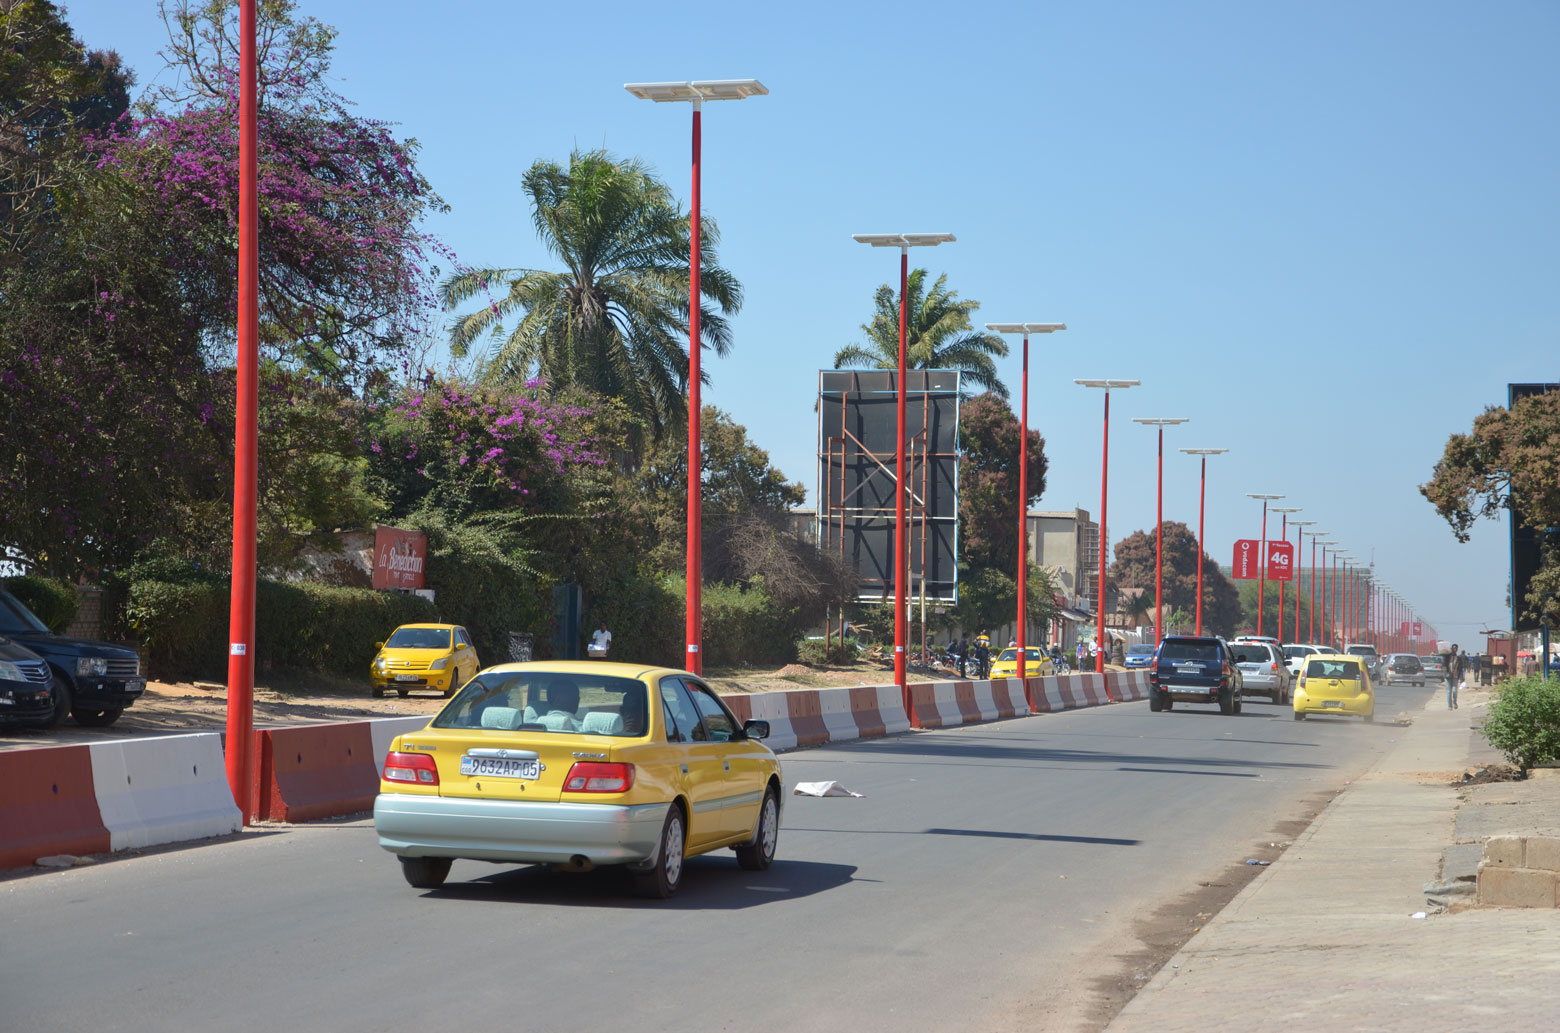 Kasa-Vubu avenue in Lubumbashi after renovation in 2019